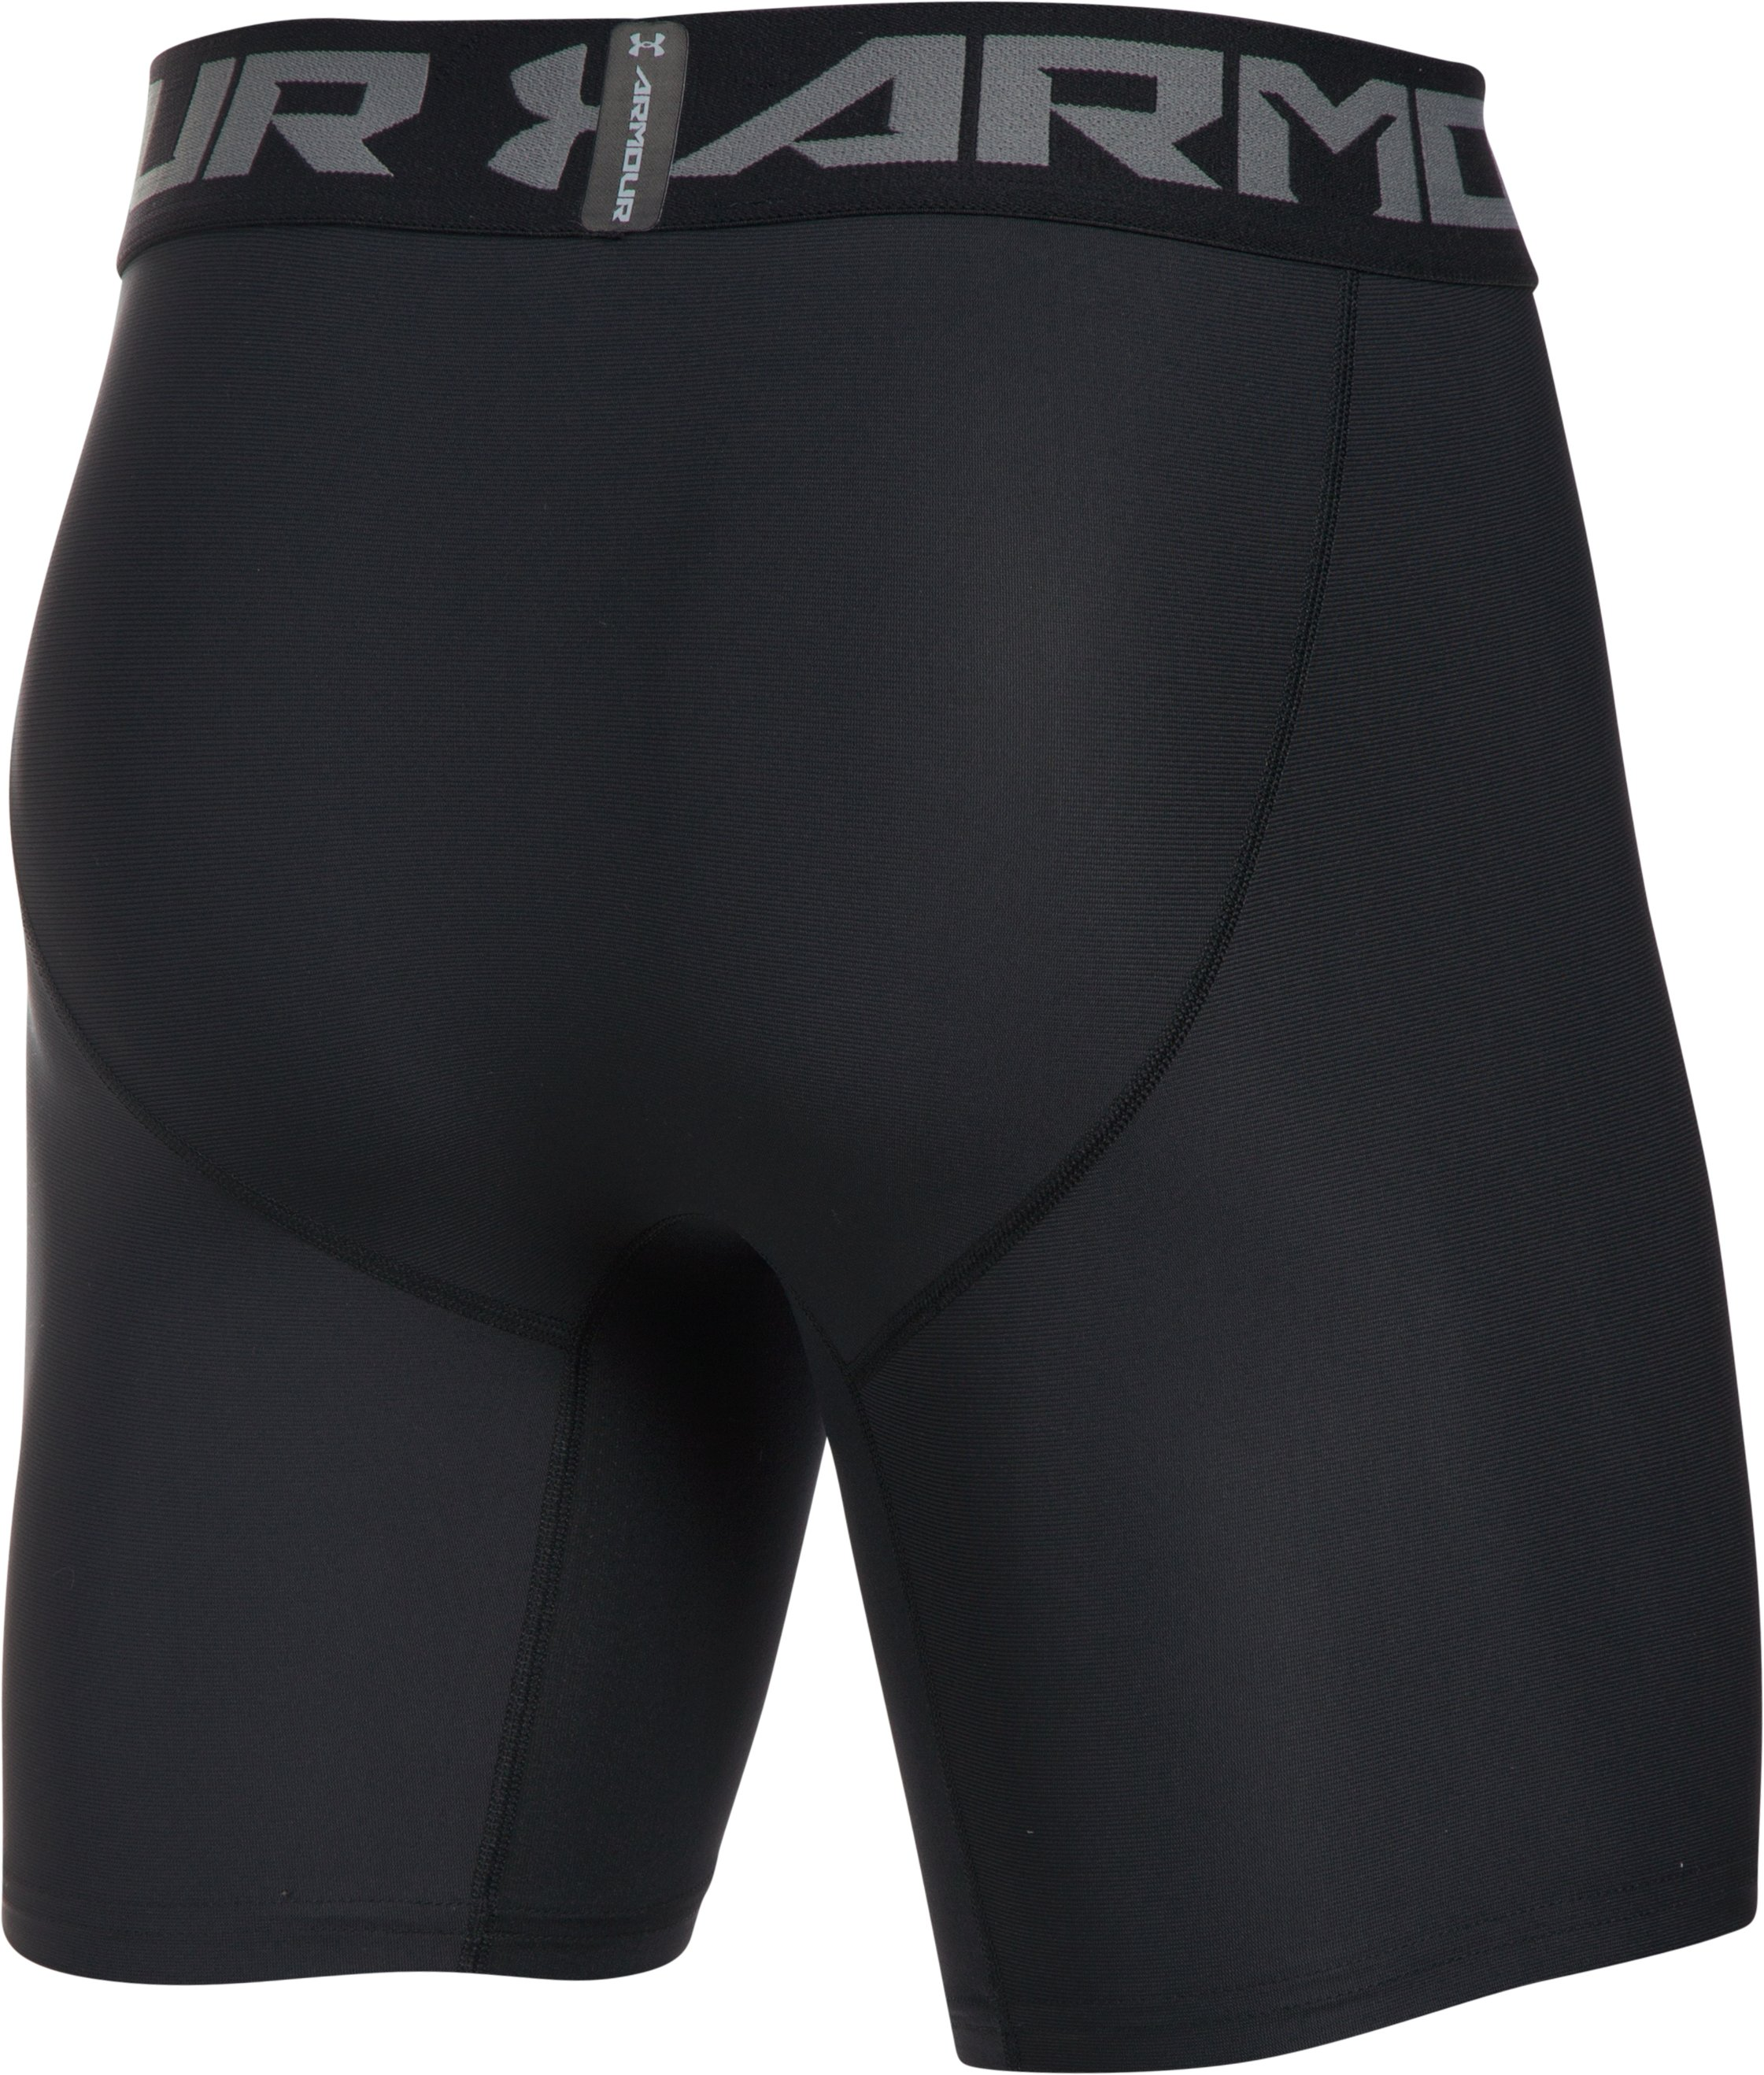 Men's HeatGear® Armour Mid Compression Shorts, Black